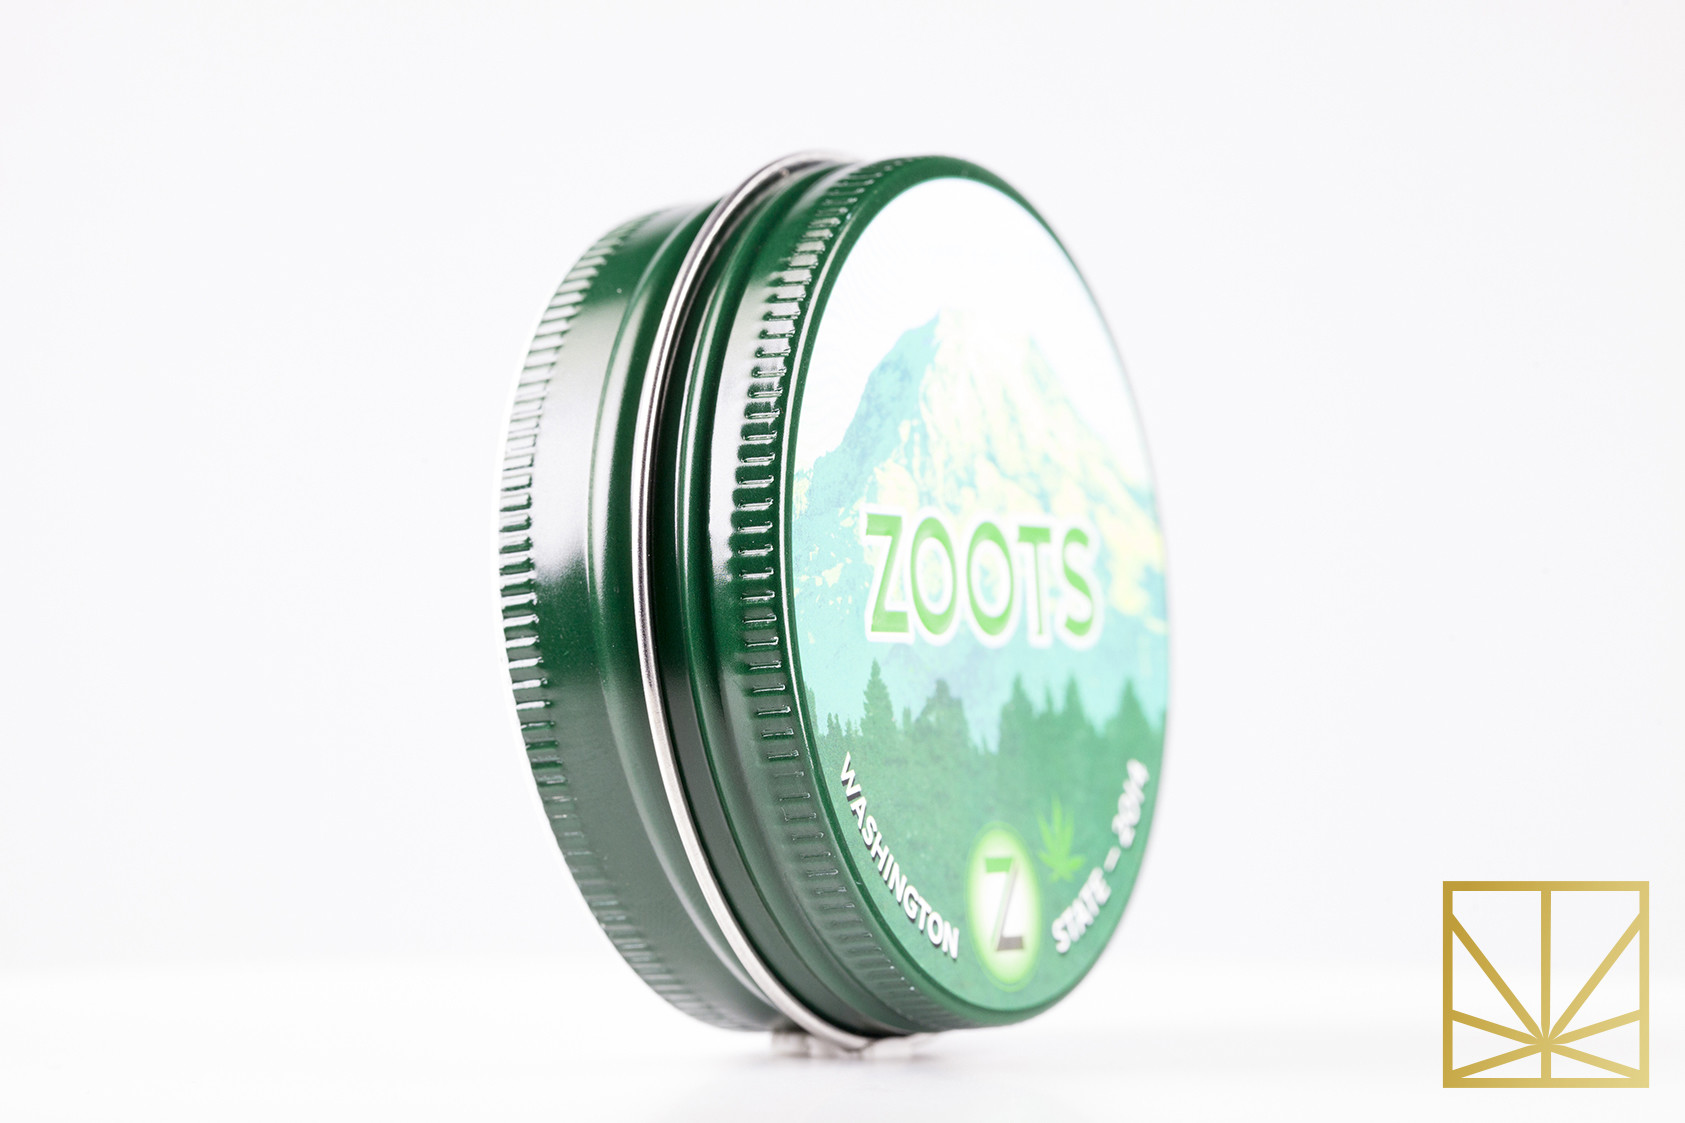 Zoots ZootRocks Lemongrass